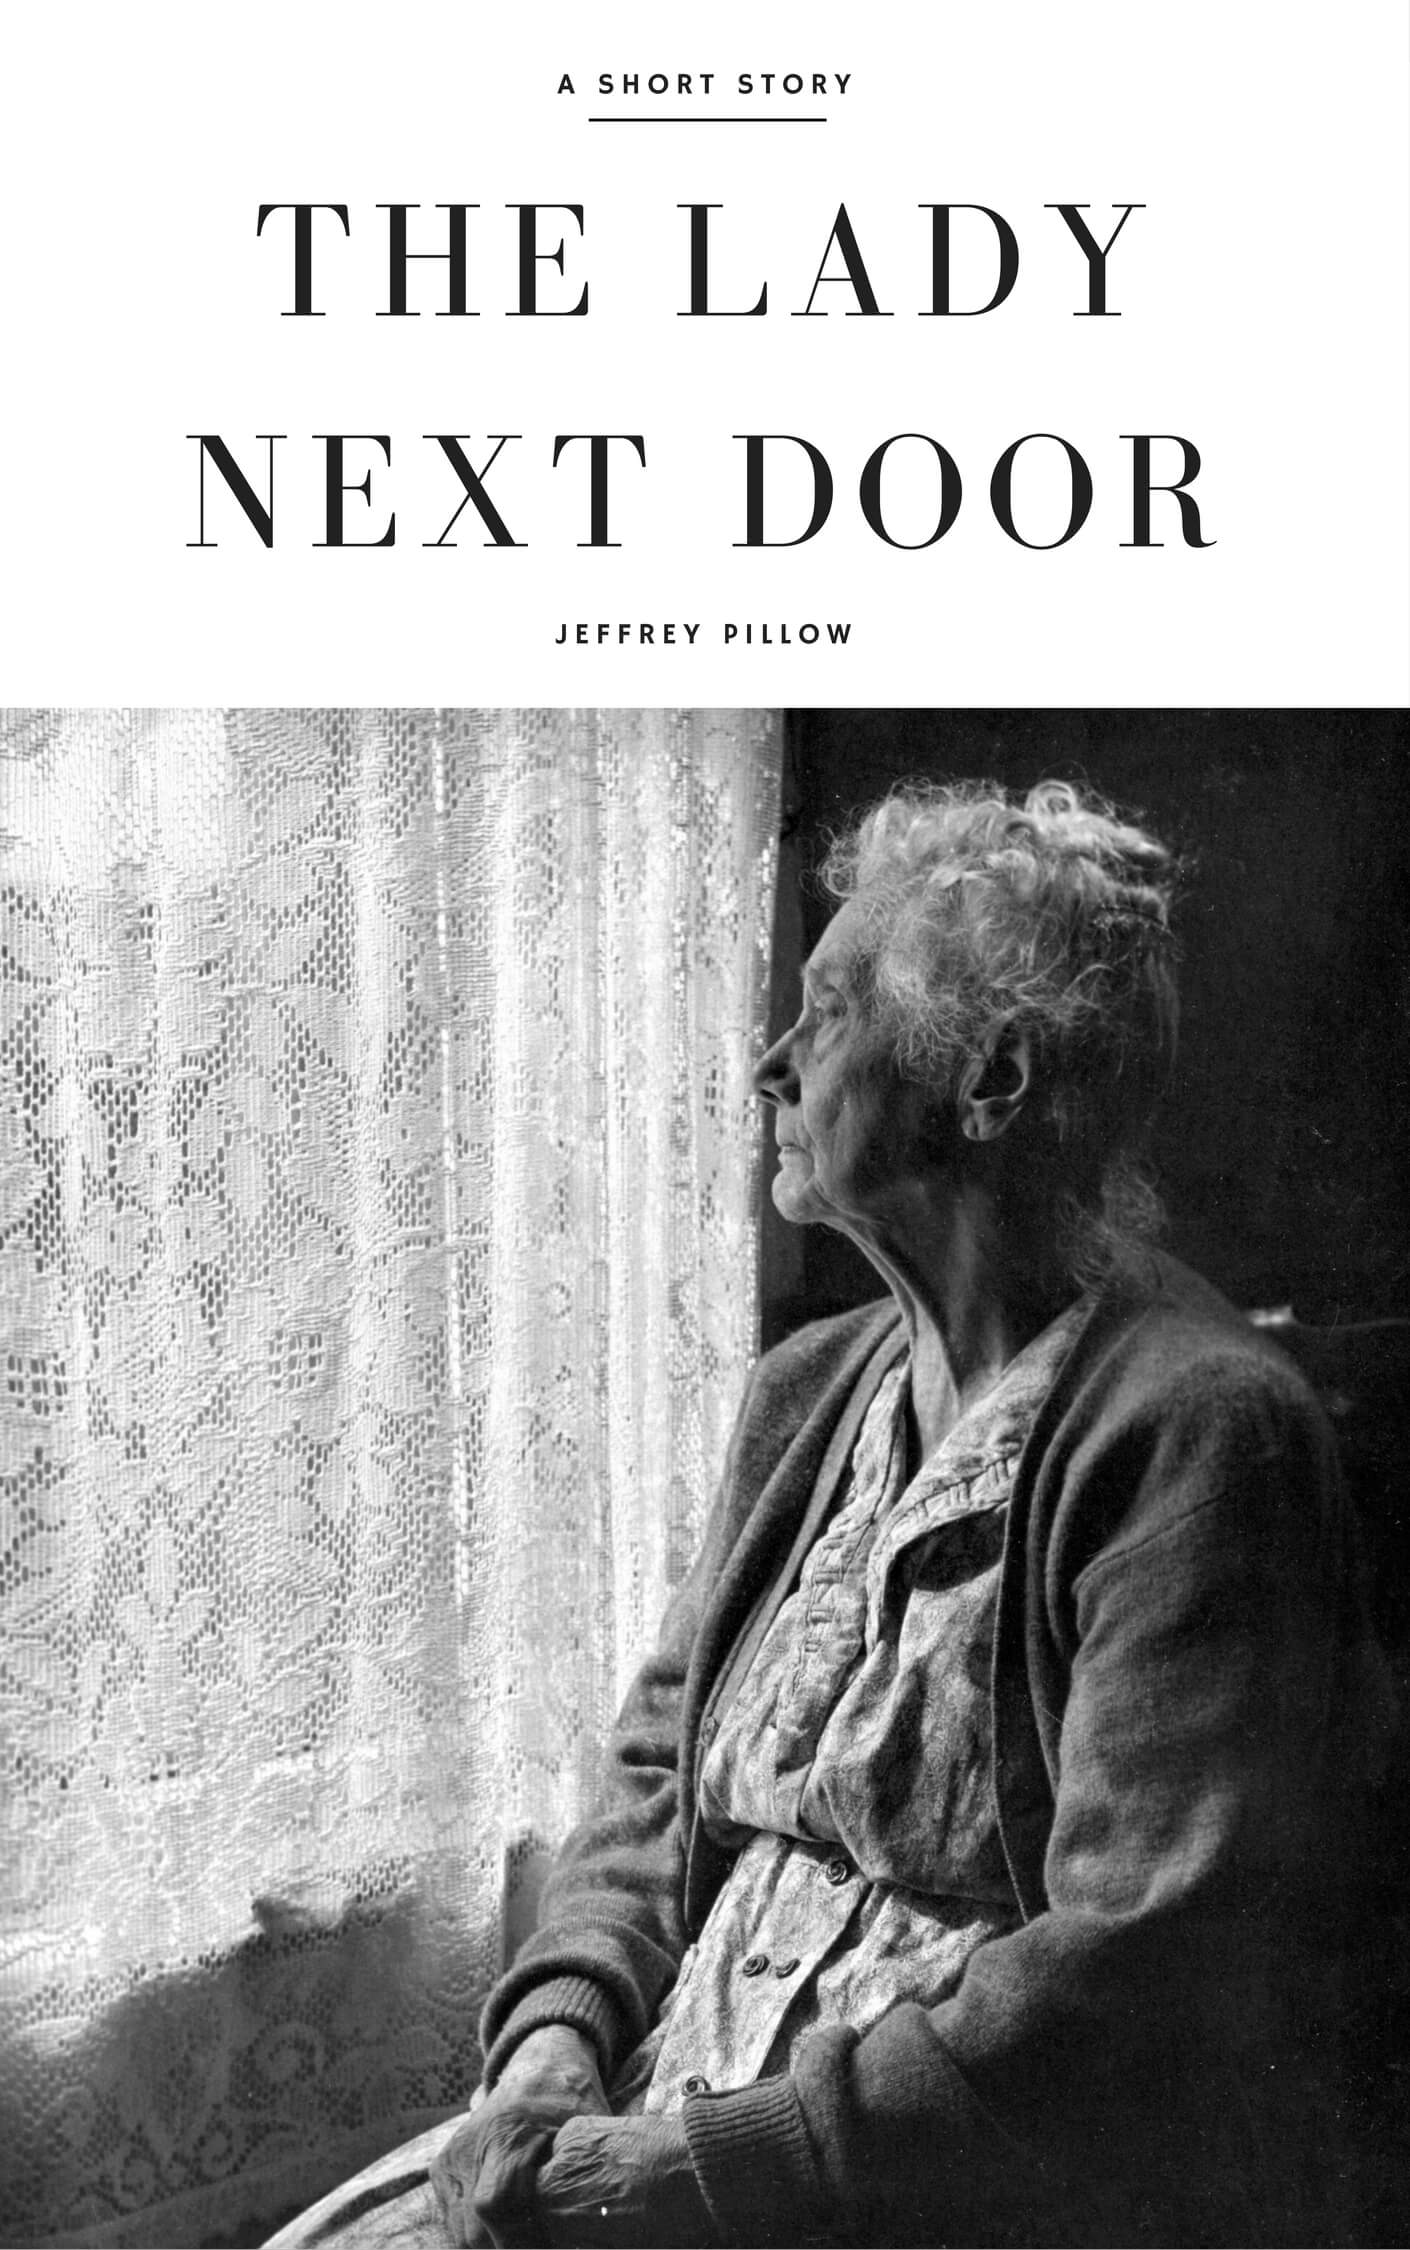 the lady next door, a short story by jeffrey pillow